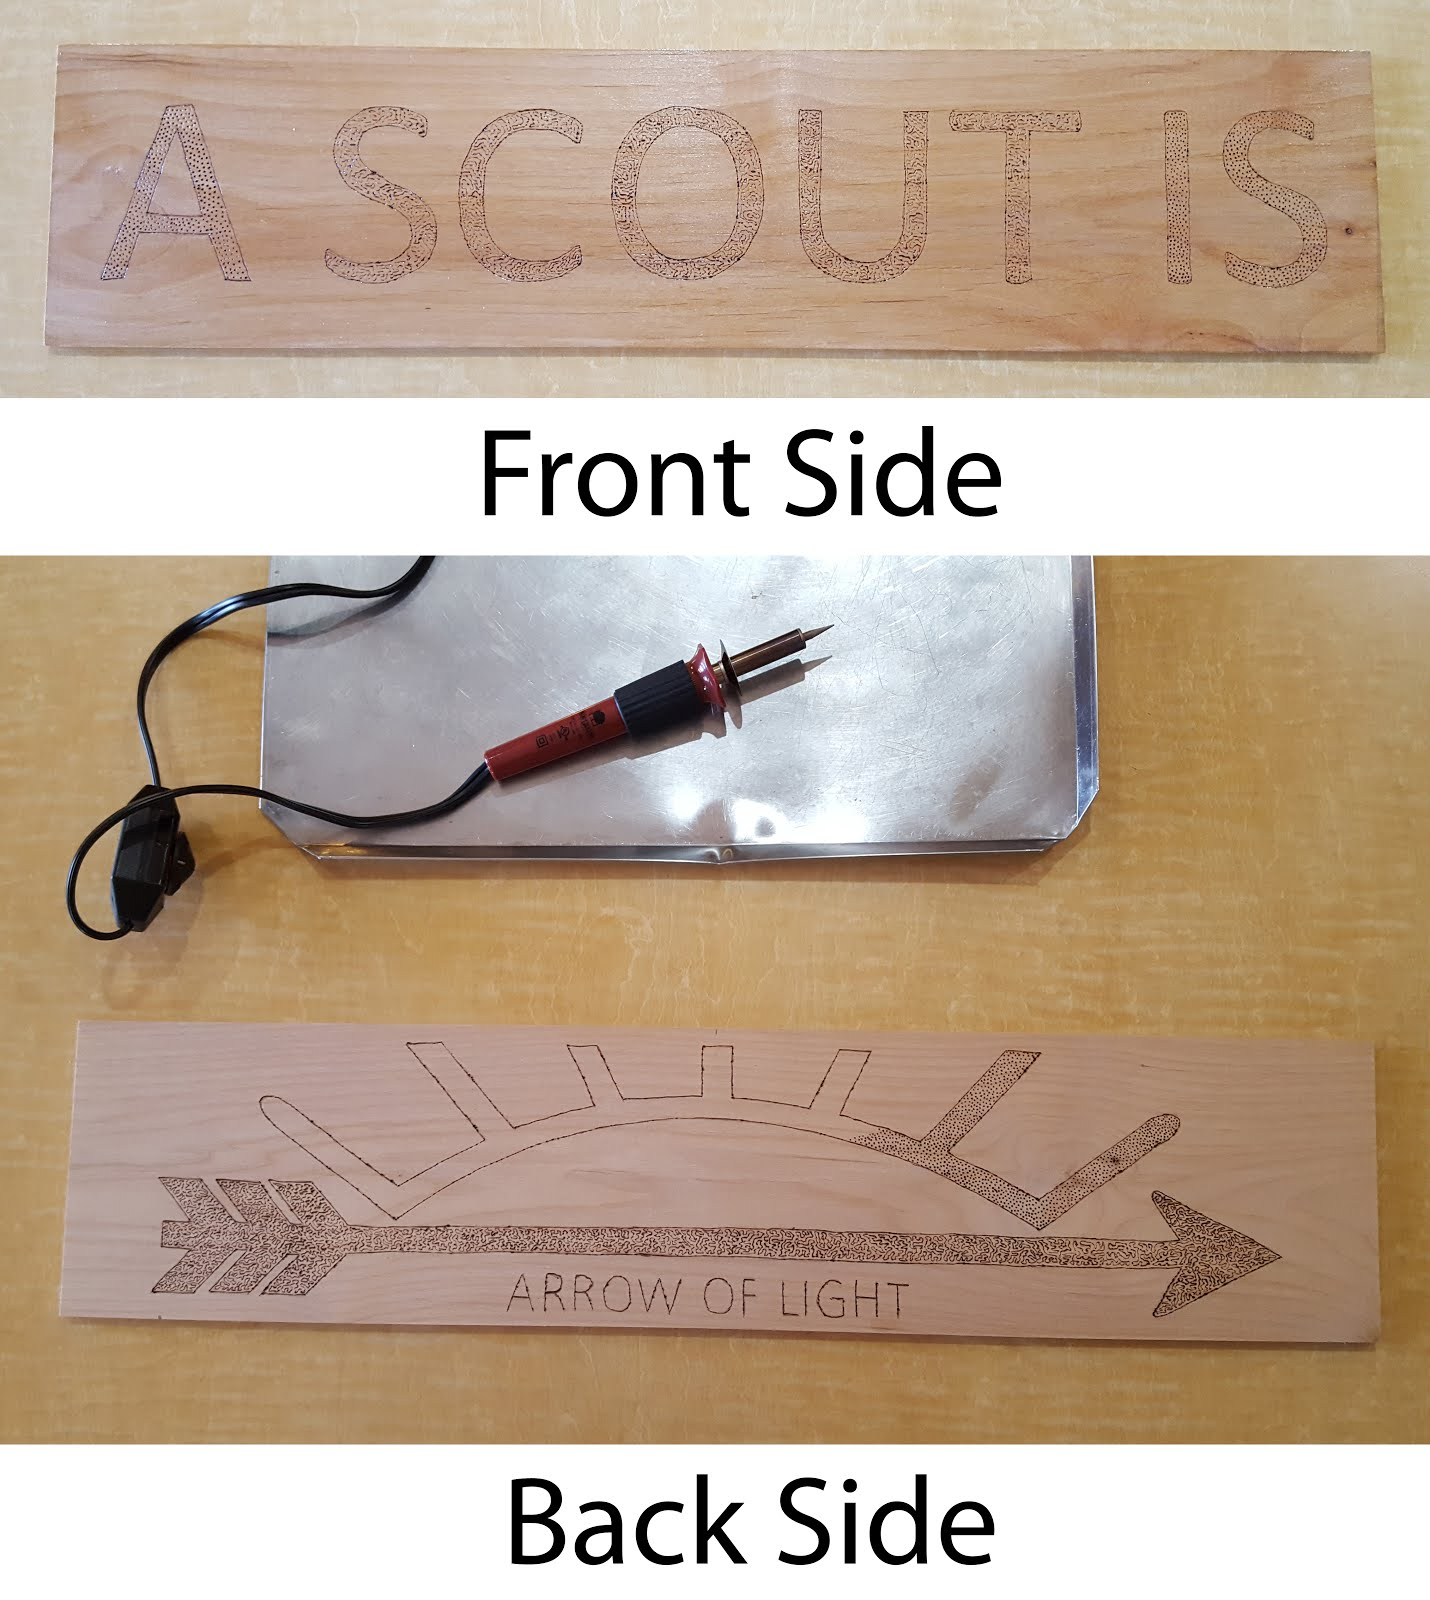 San tan district cub scout roundtable february 2018 24 first wood burn the outline and then you can fill in the letter with whatever design you want buycottarizona Choice Image